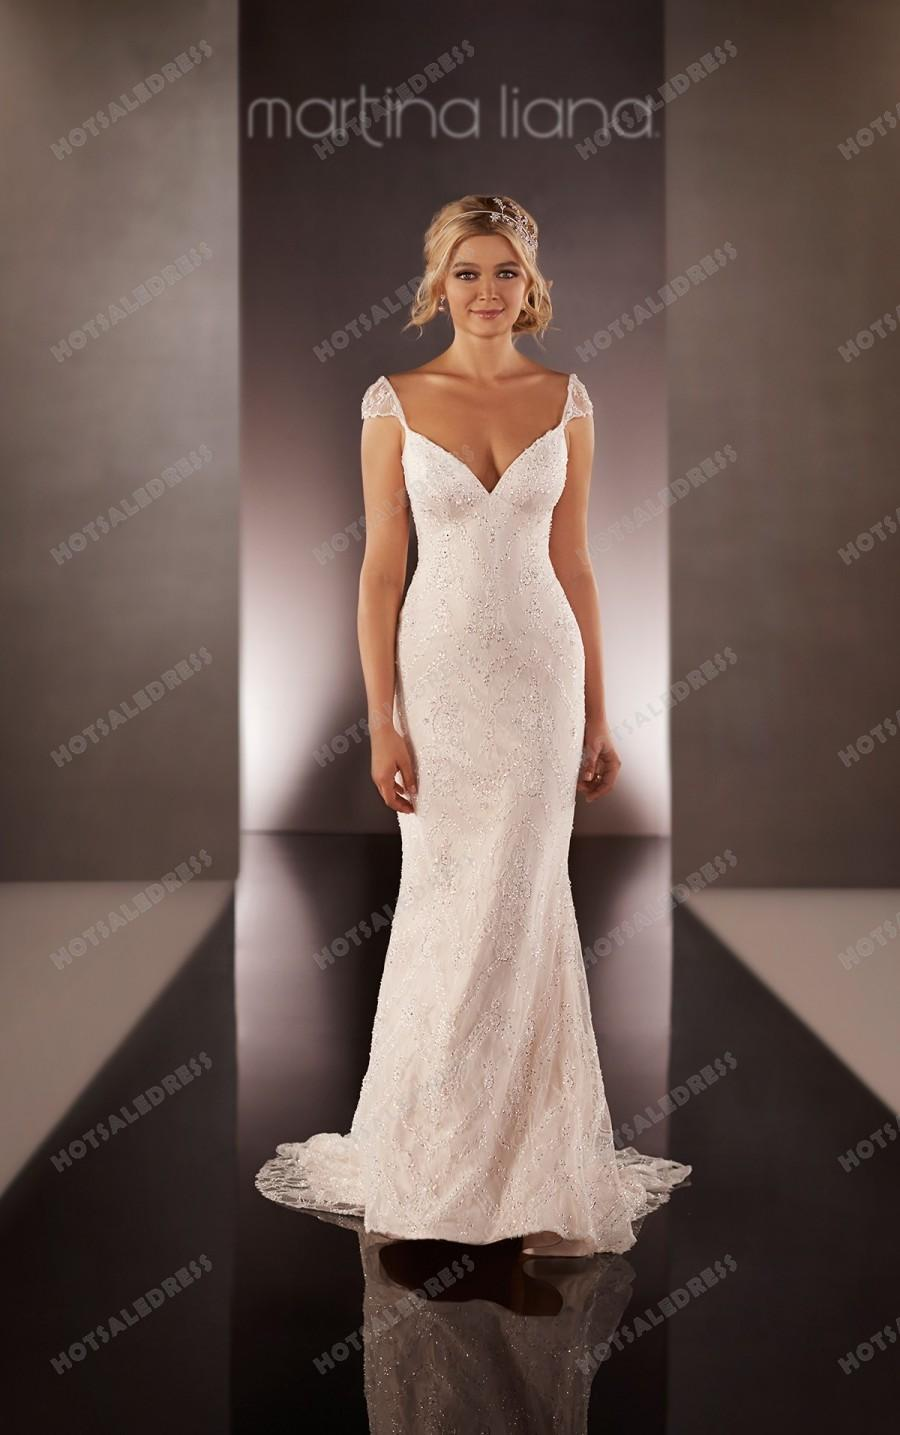 martina liana cap sleeve wedding dress style wedding dress cap sleeves Martina Liana Cap Sleeve Wedding Dress Style